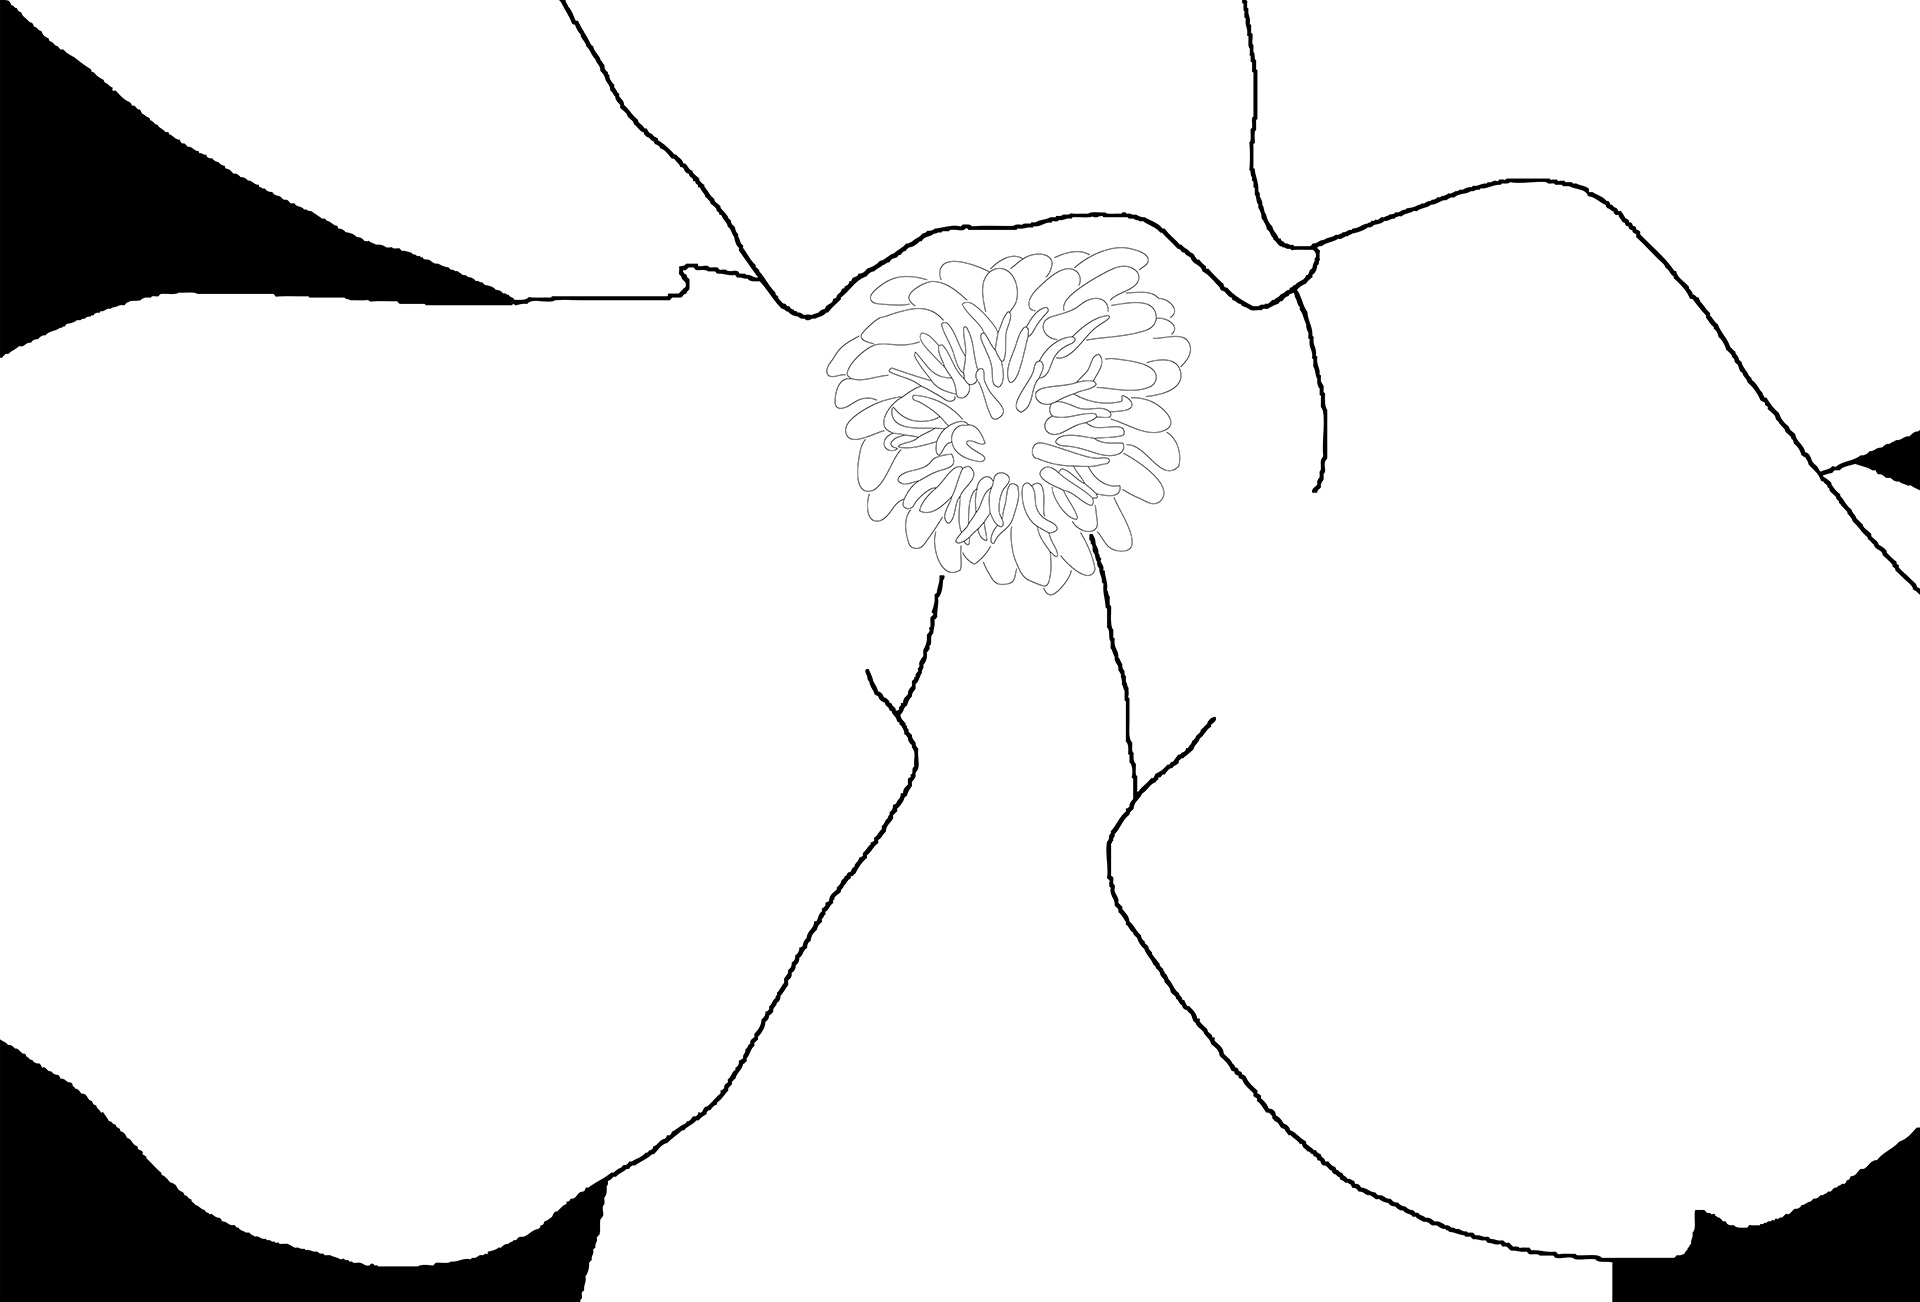 Magnolia-4577-BW Drawing - detail square